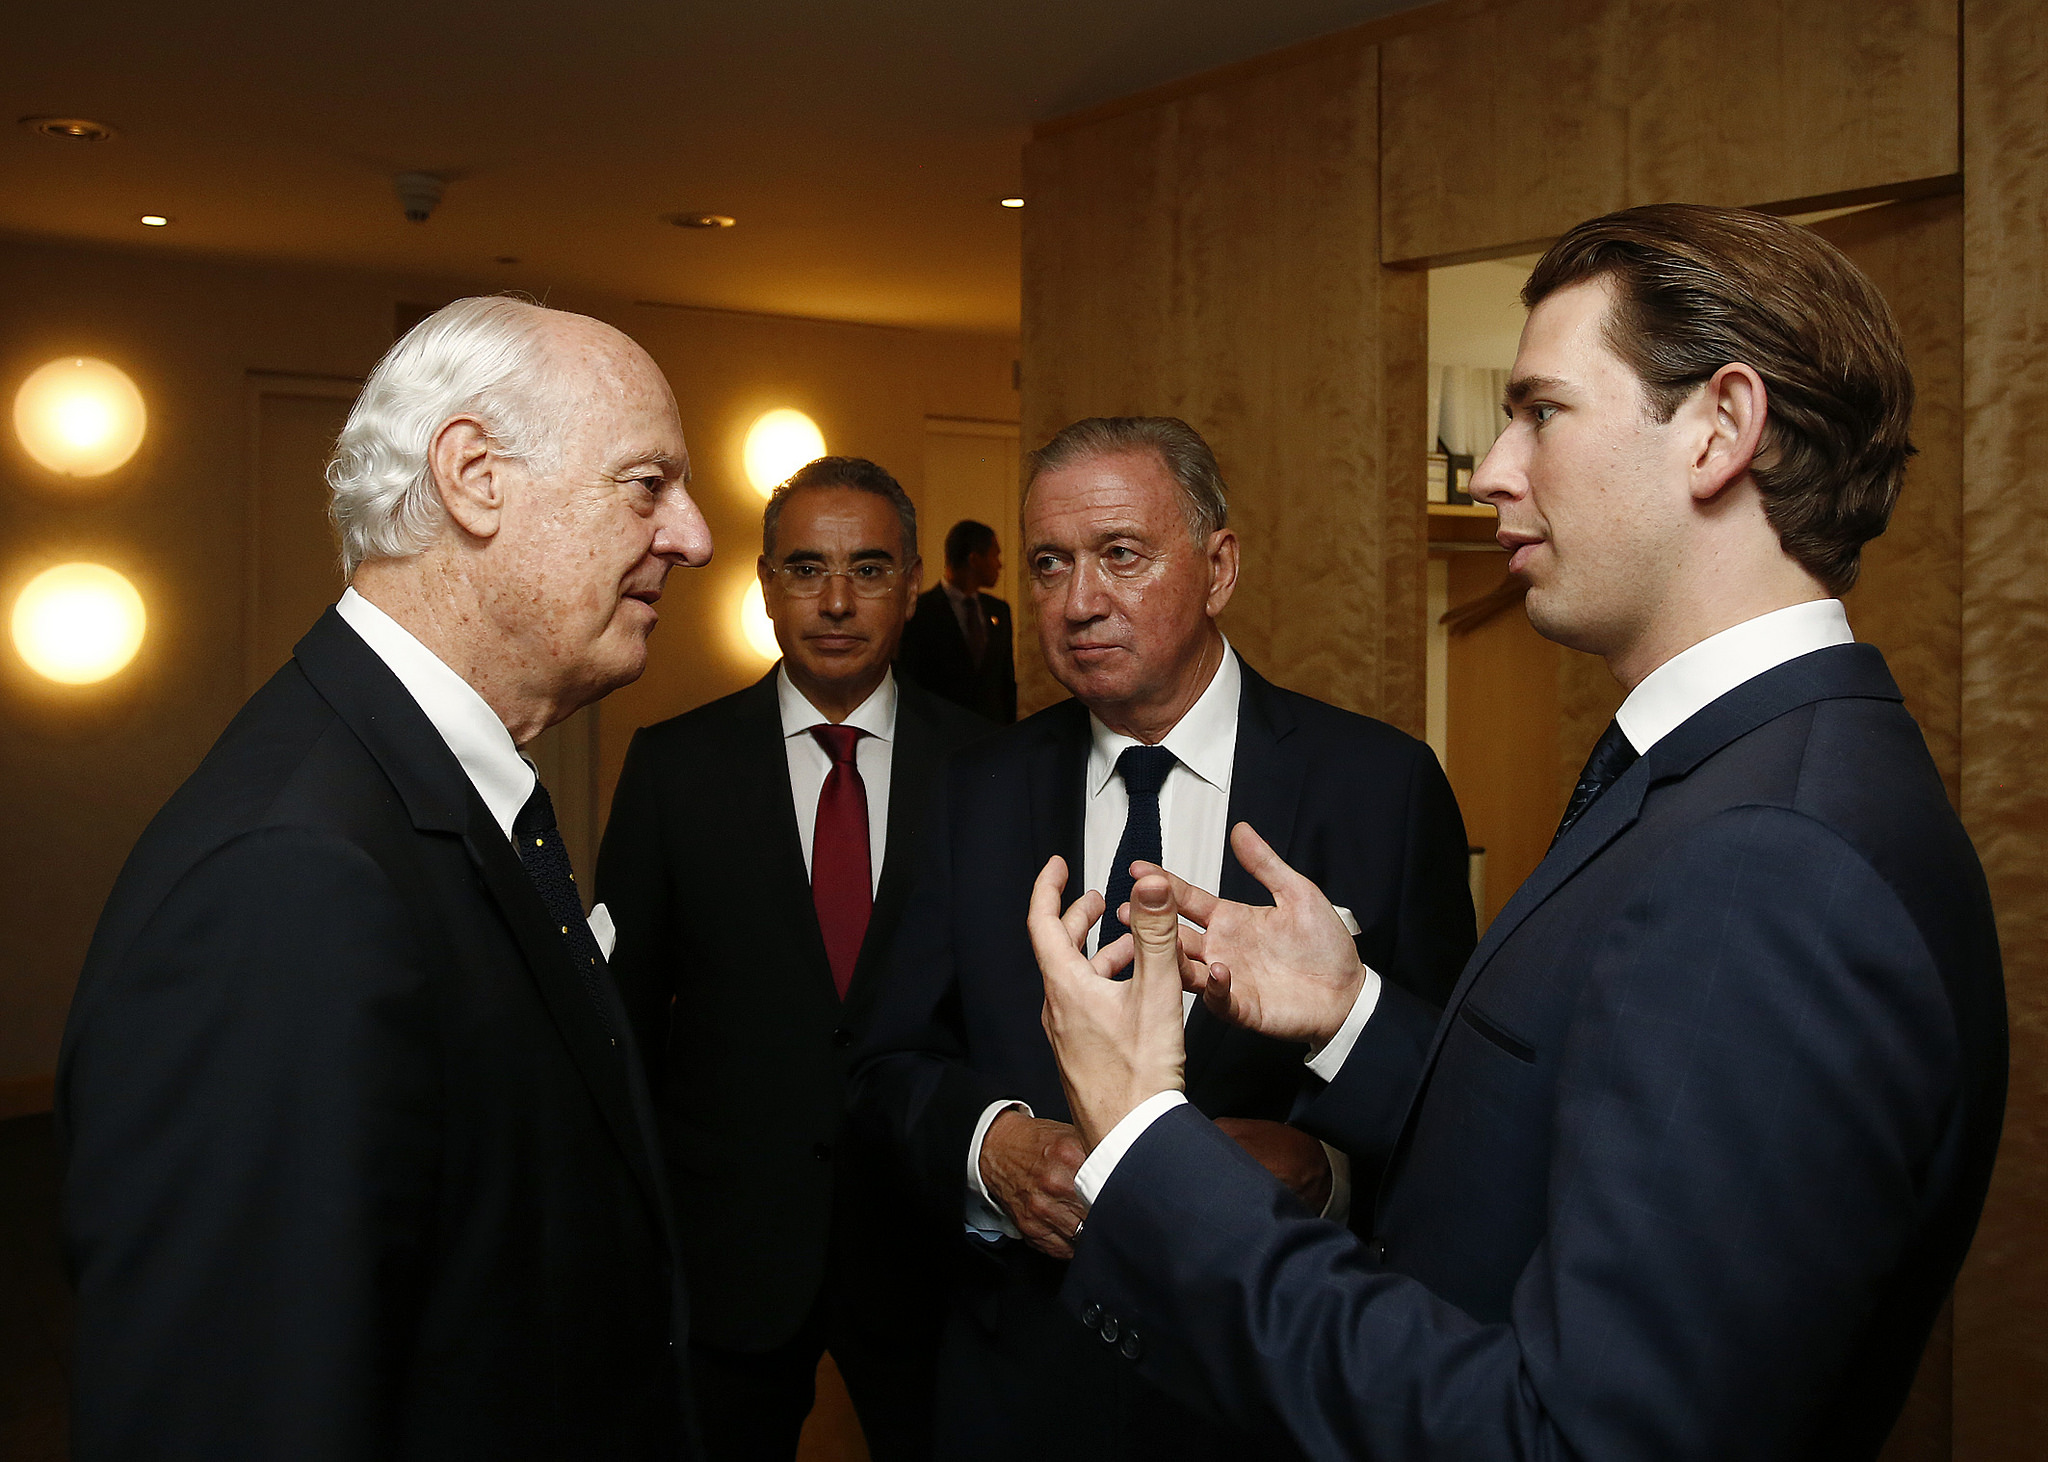 FM Kurz speaking to the UN Special Envoy for Syria, Staffan de Mistura. Photo: Dragen Tatic